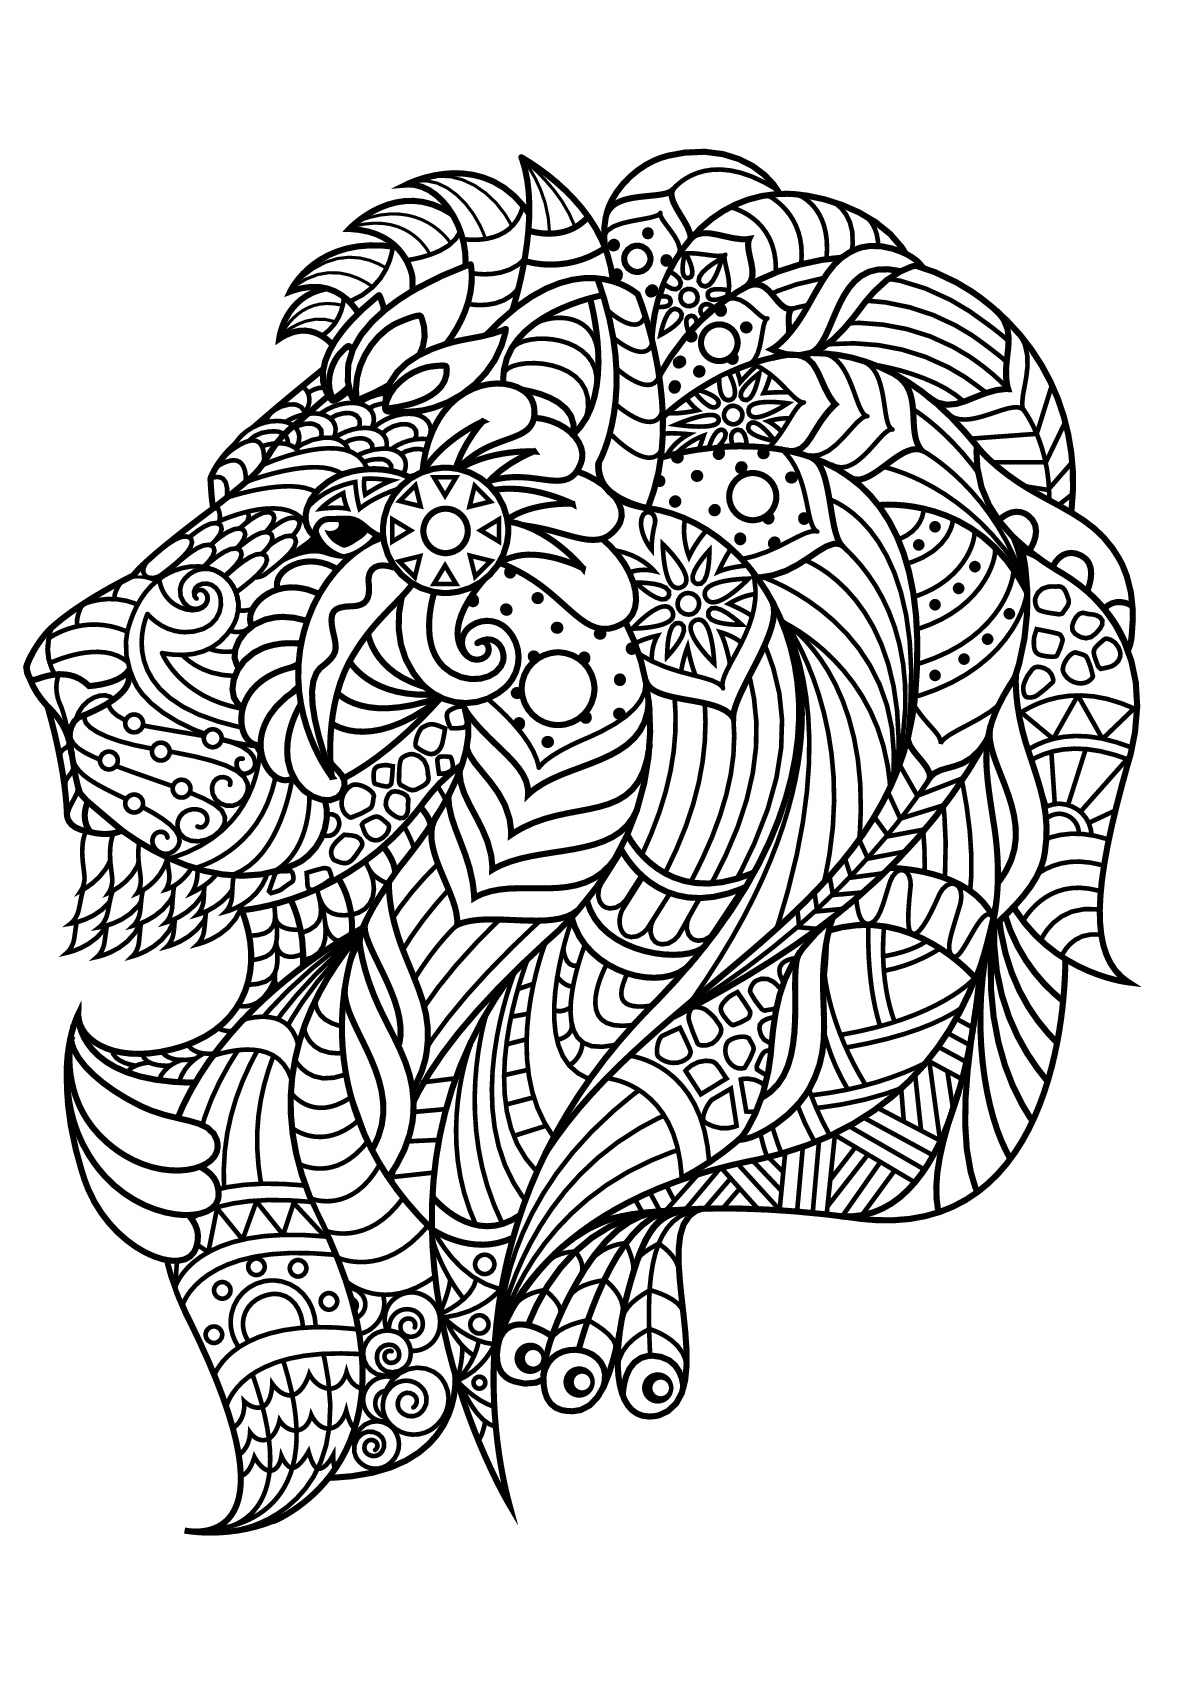 coloring lion pages lion to print for free lion kids coloring pages lion pages coloring